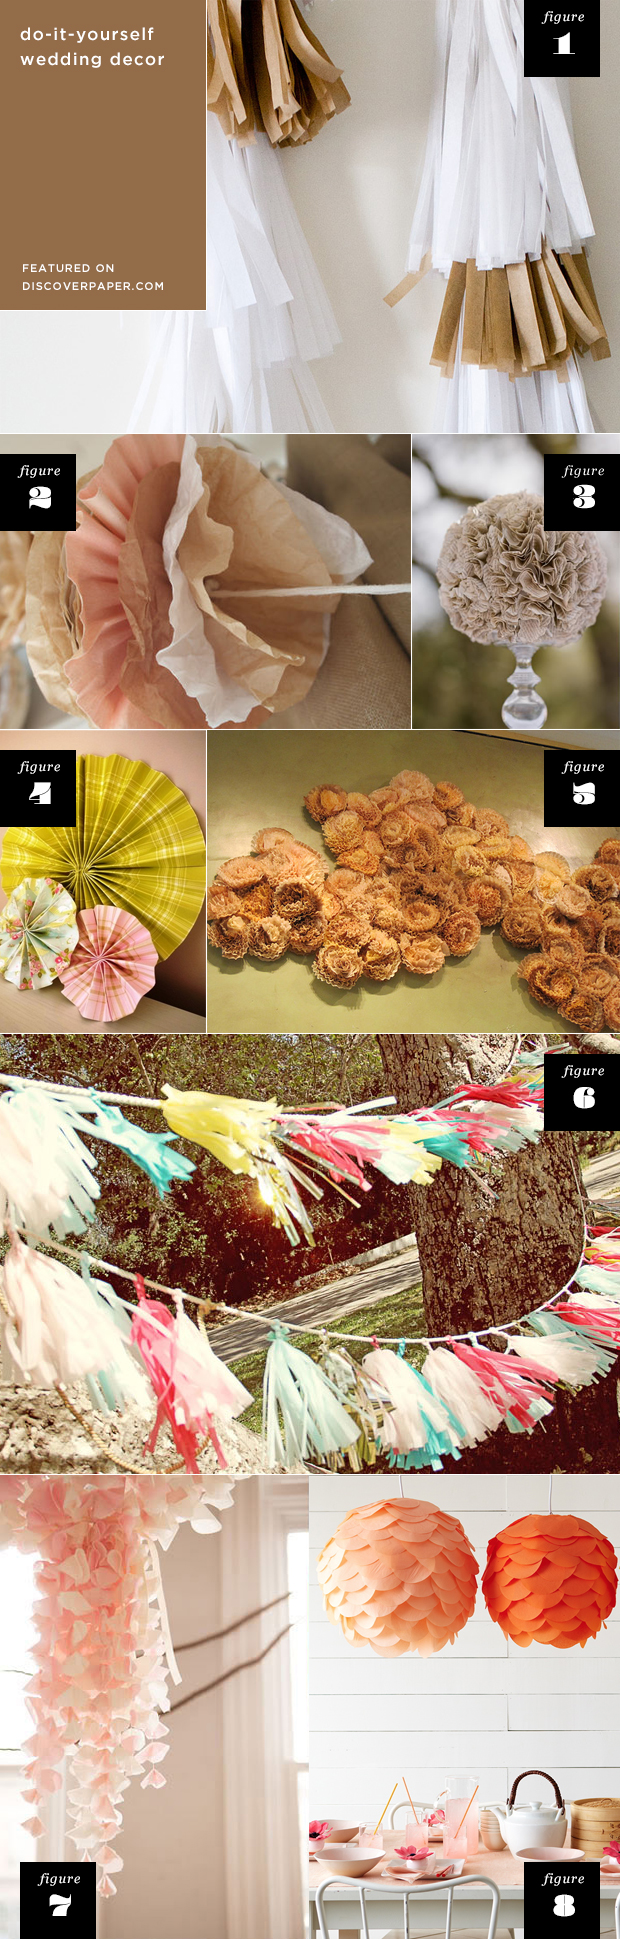 Diy wedding decor ideas featured on discoverpaper i think you